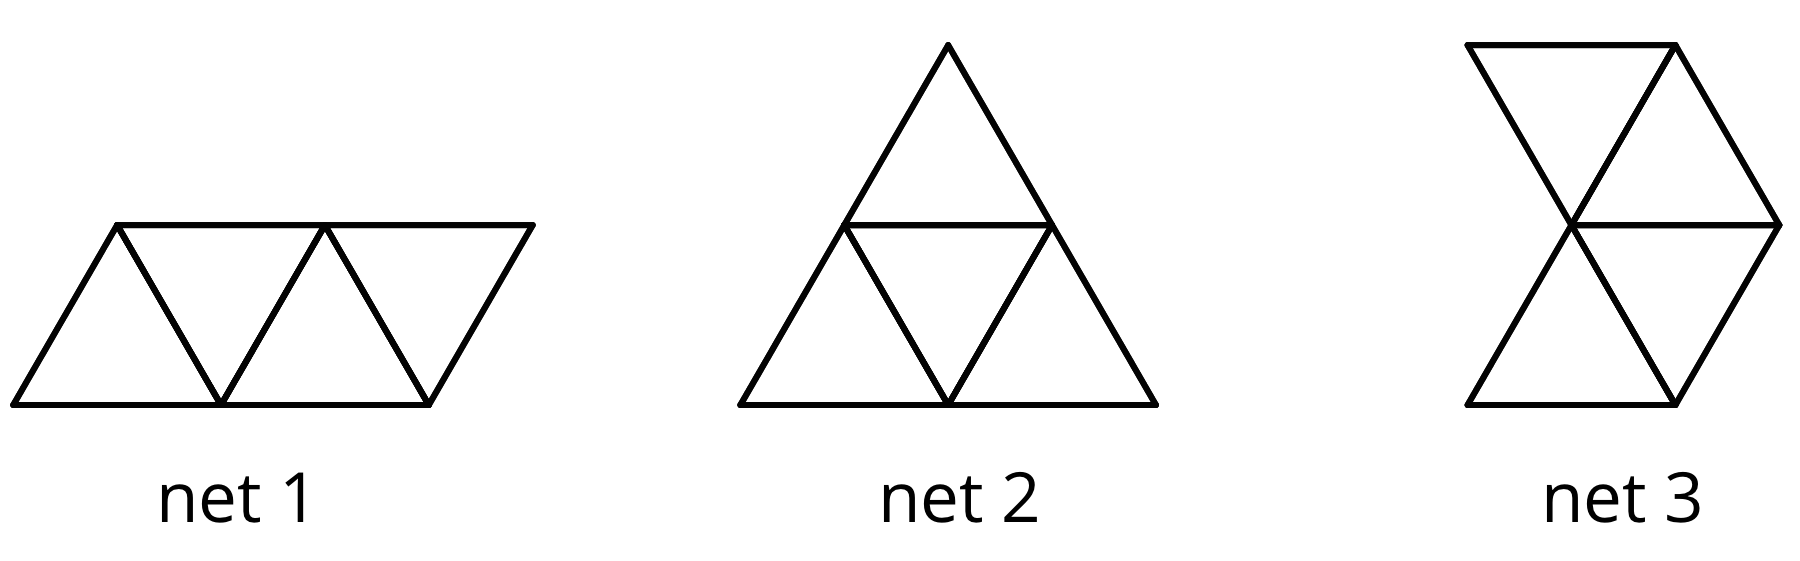 Three figures labeled net1, net 2, and net 3. Net 1 has four small triangles arranged horizontally to create a parallelogram, net two has four small triangles arranged to make a larger triangle, and net 3 has two four small triangles which all meet at their vertices.